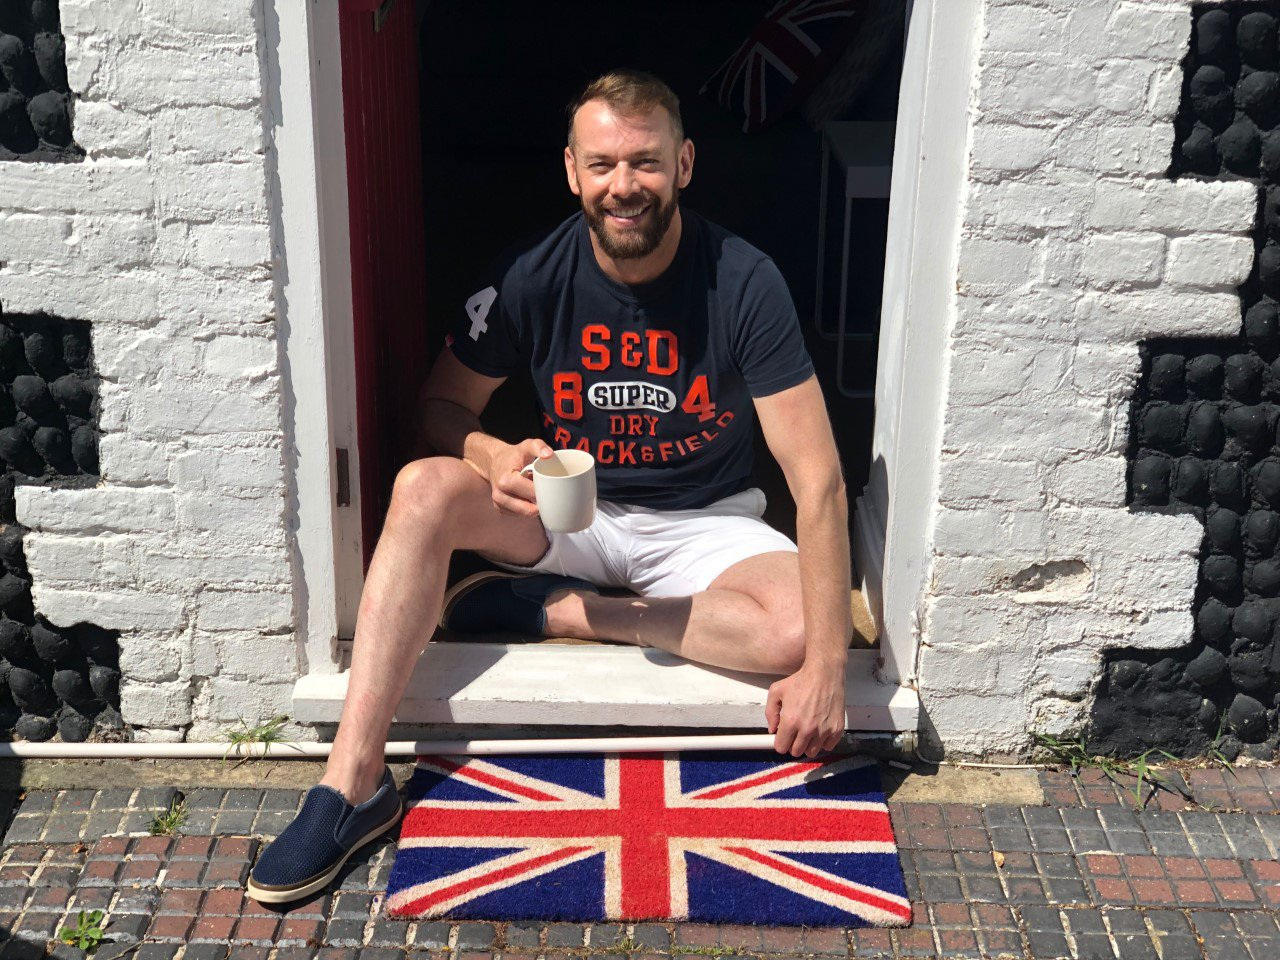 Man called racist because he's got a Union Flag doormat